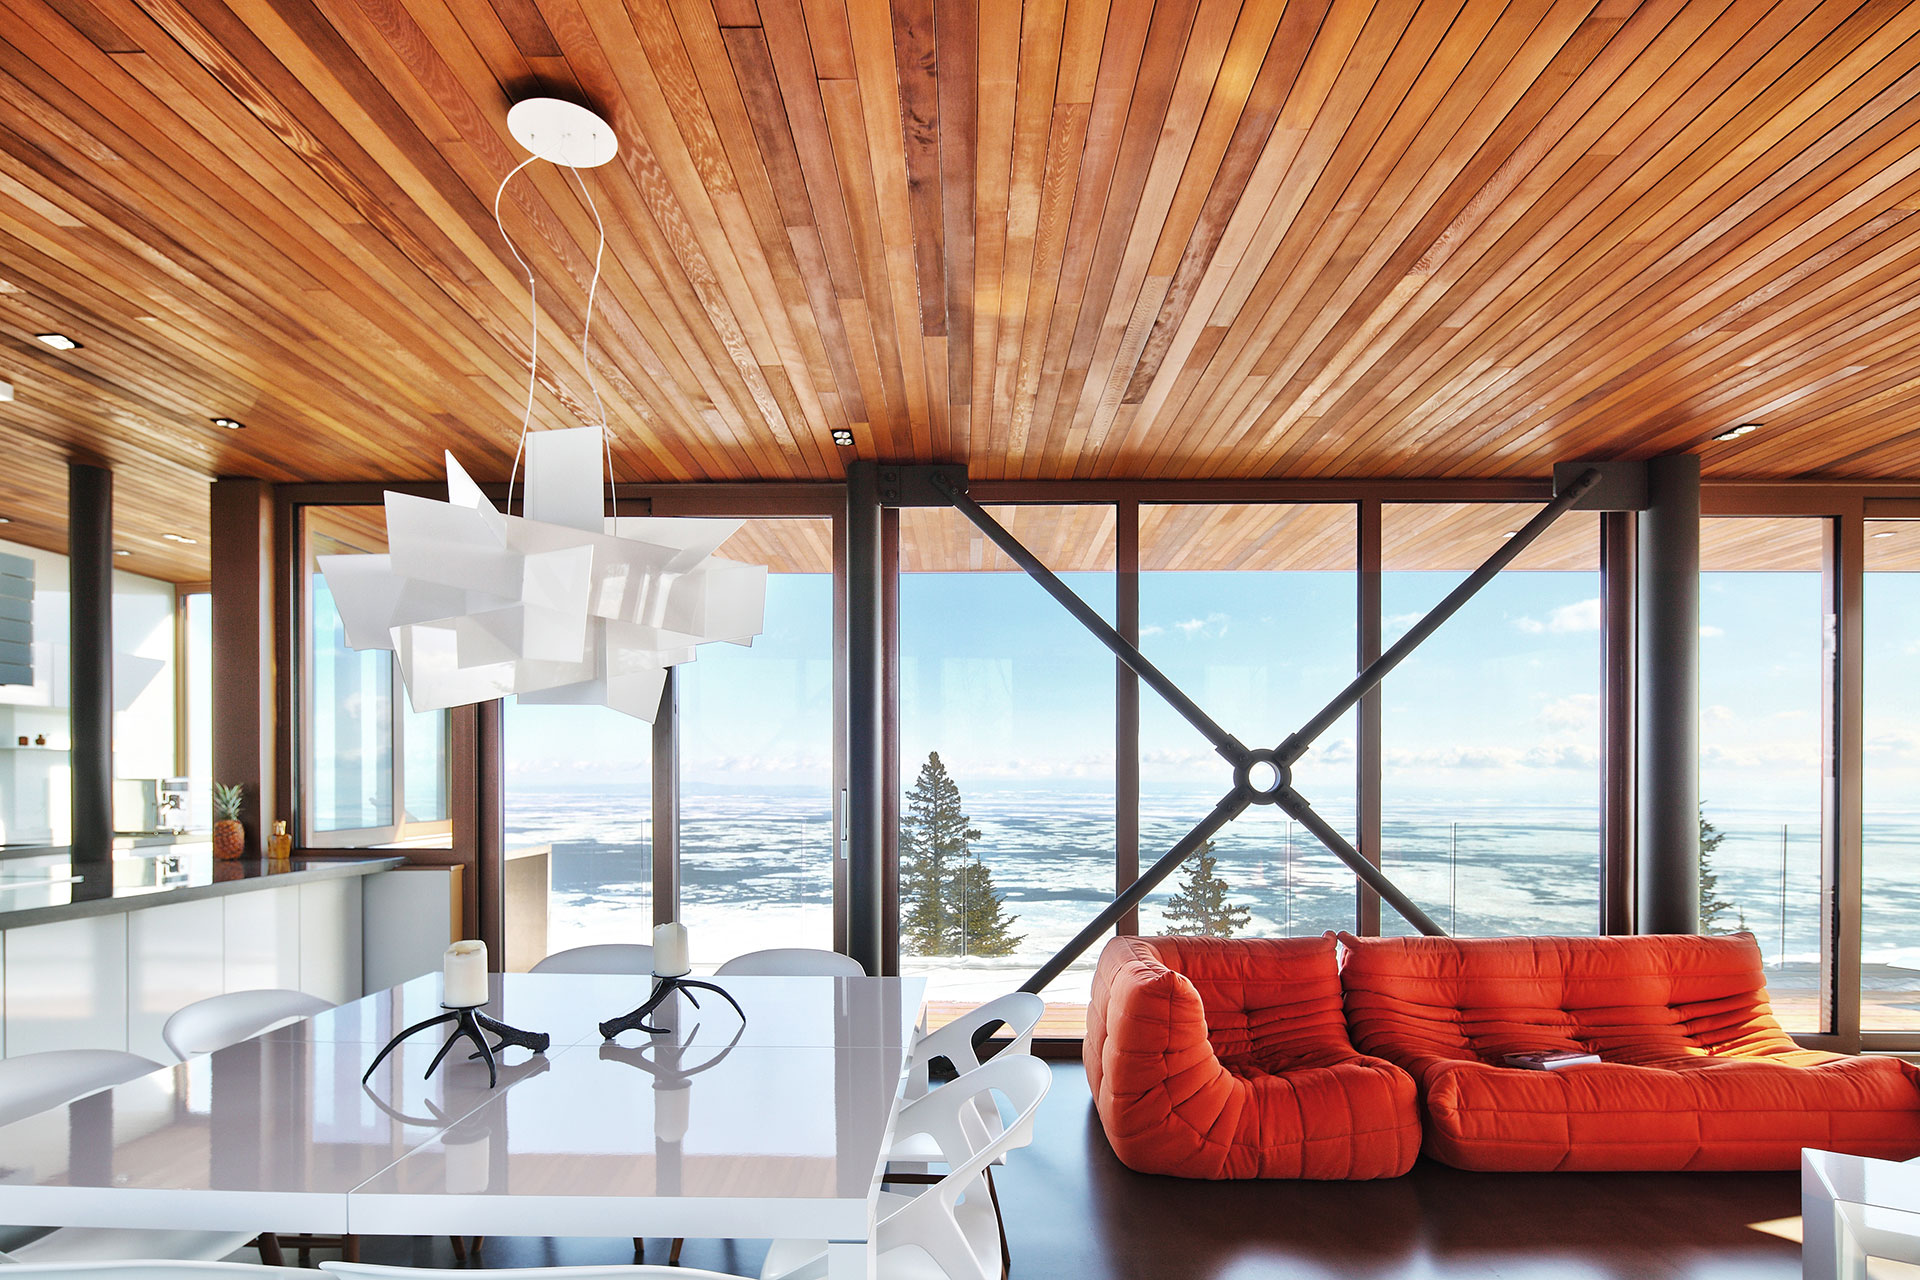 Perched on a promontory overlooking the St. Lawrence River, in Charlevoix, Quebec, this deftly designed home redefines the ski chalet for the 21st century.